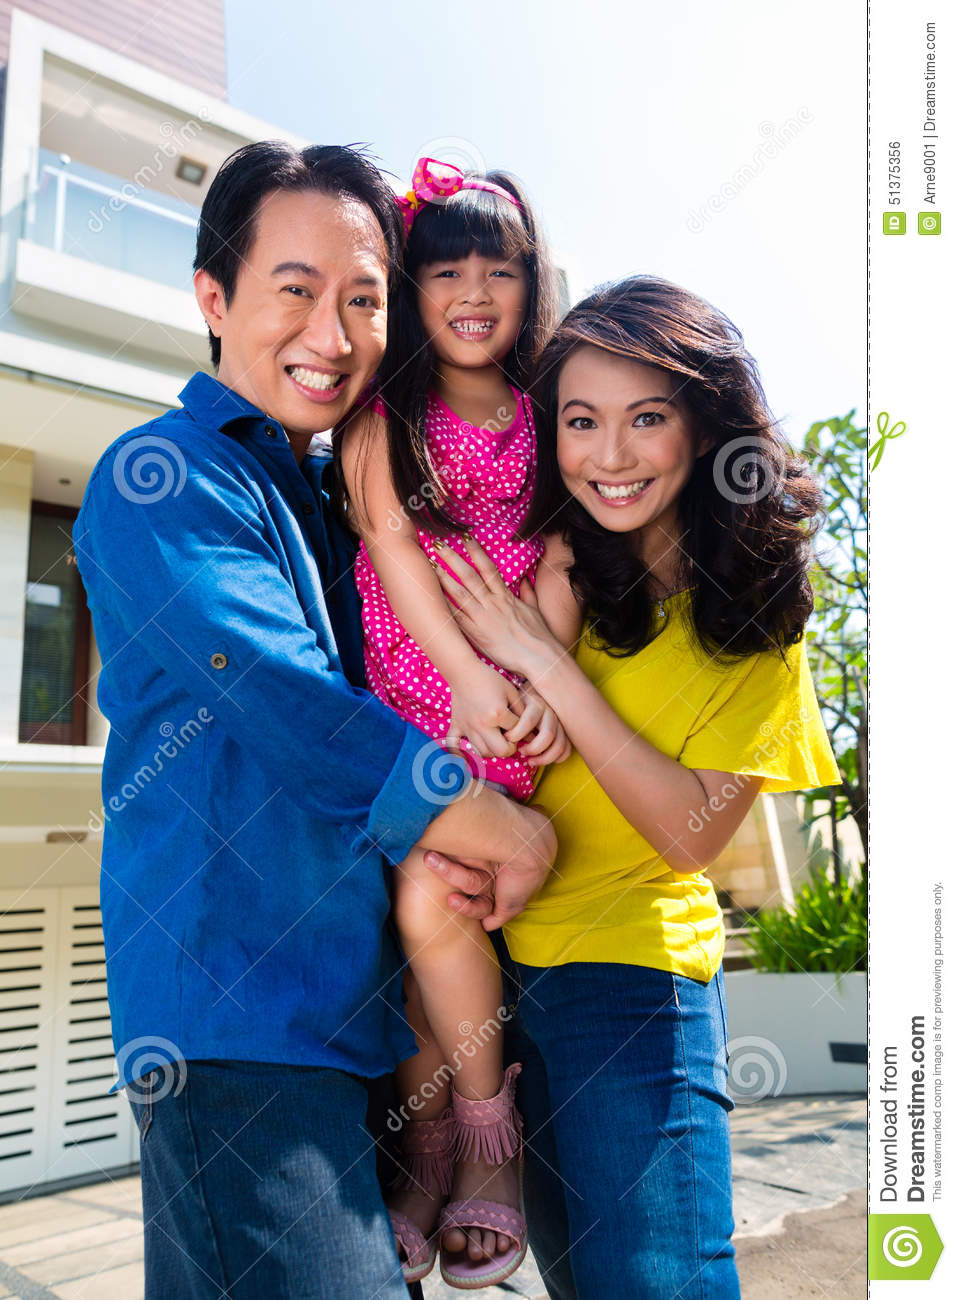 Asian Family With Child Standing - 182.4KB